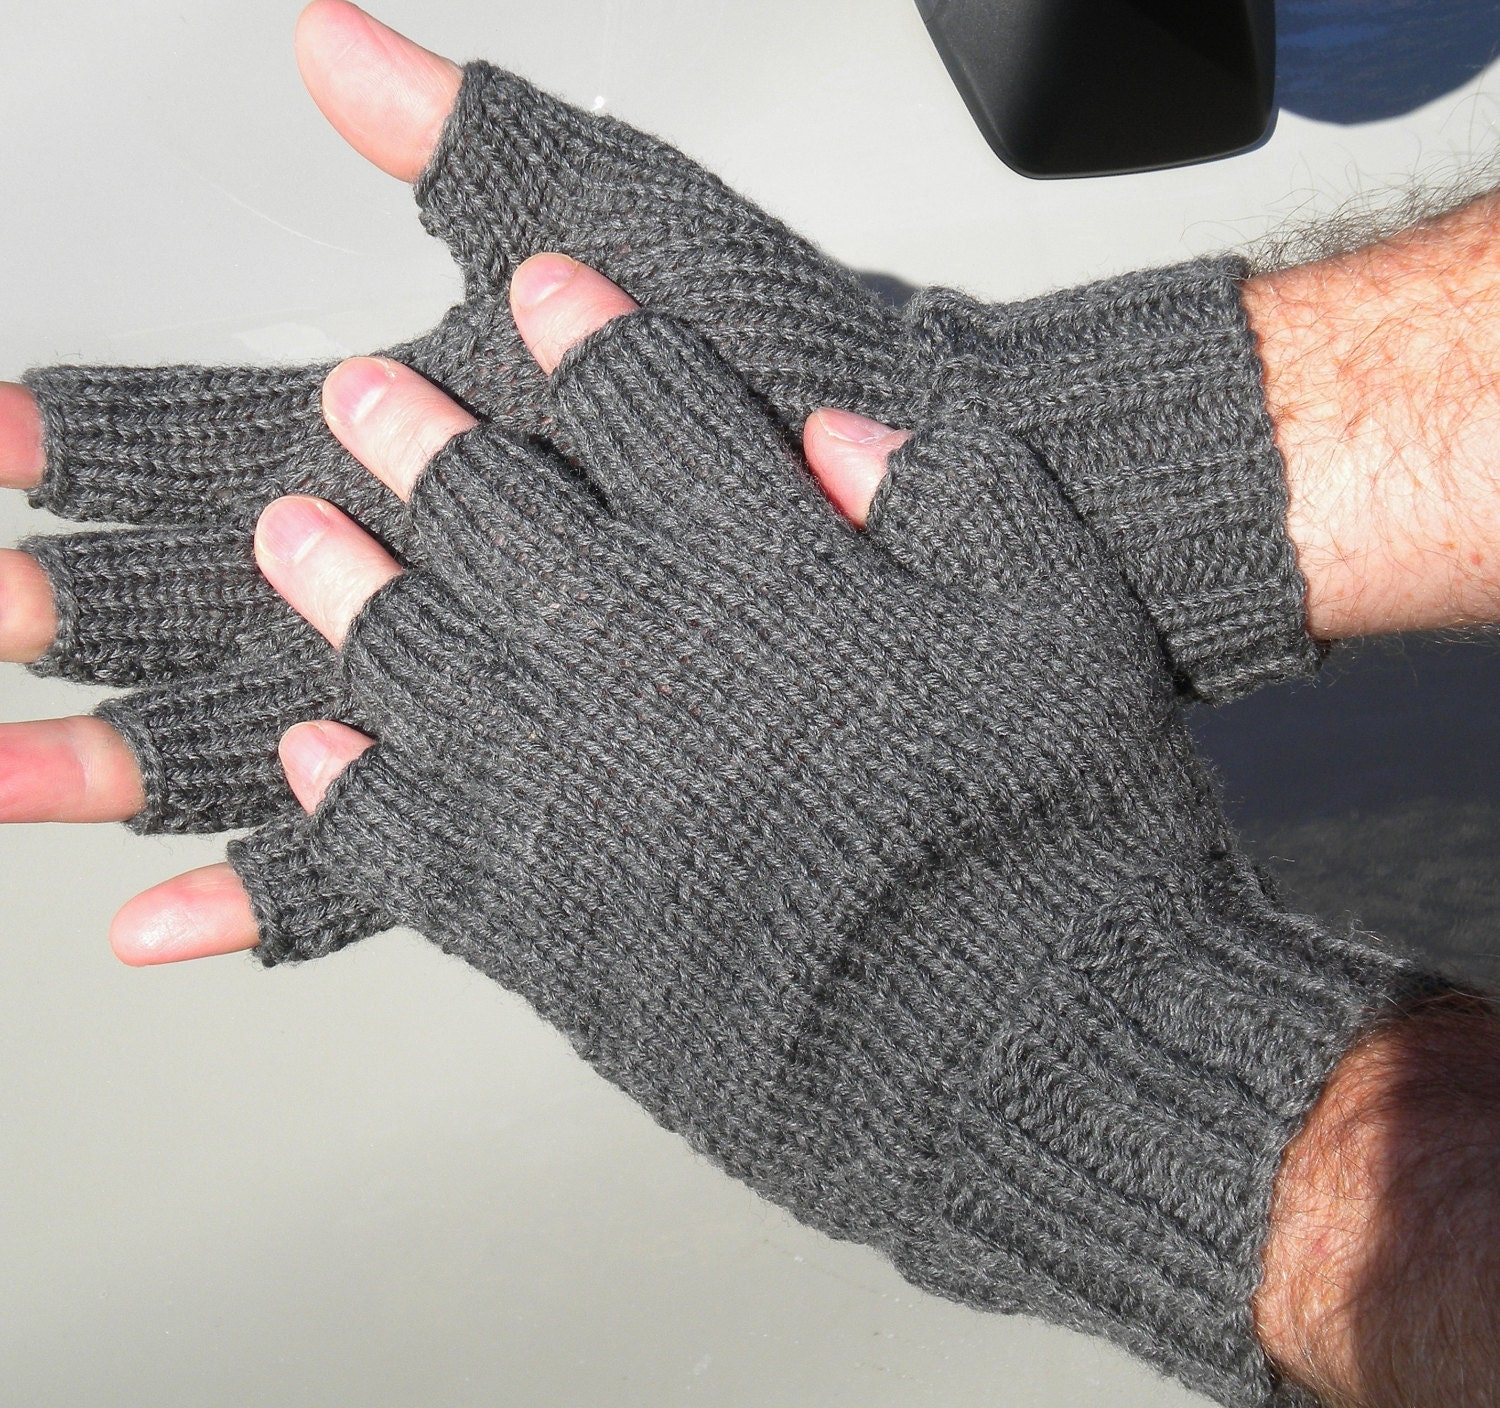 The single-layer gloves we tested, including those from 0549sahibi.tk, Agloves, and Glider Gloves, fit a bit tighter and offered more dexterity, but ultimately resulted in less predictability during typing because they were a bit long in the fingertips for two testers (including me) despite being the right size according to each company's size charts.